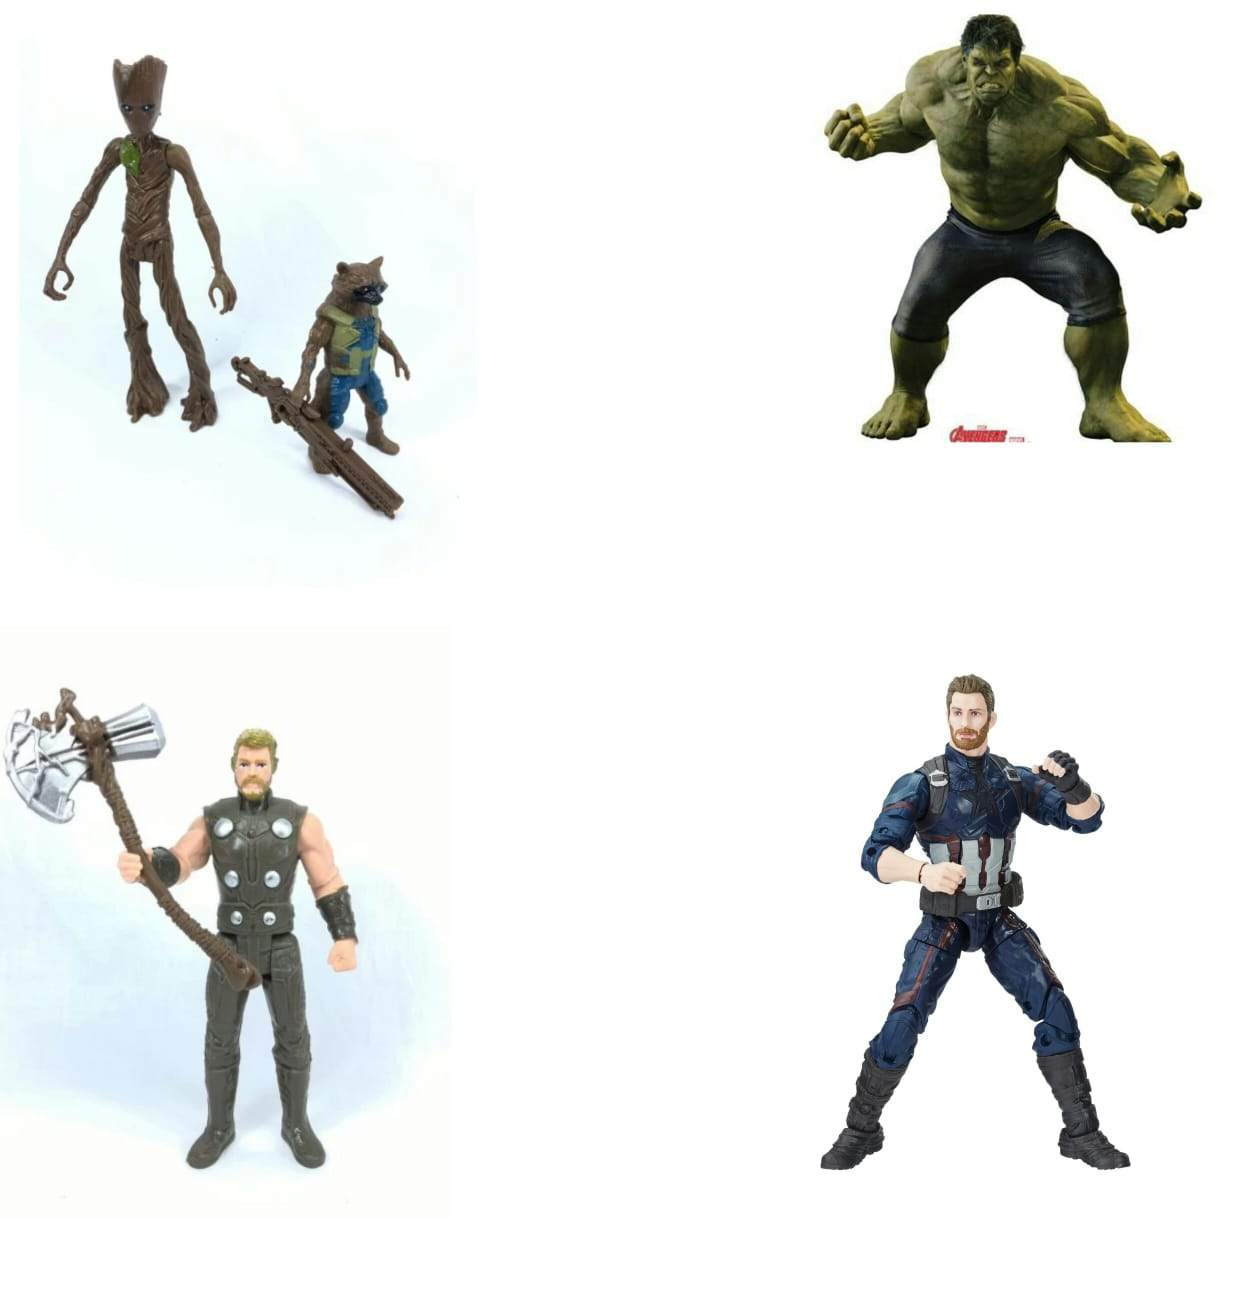 Super Hero Combo Set 15cm (Approx) Thor, Rocket Raccoon & Groot Action Figures - Greatest deals